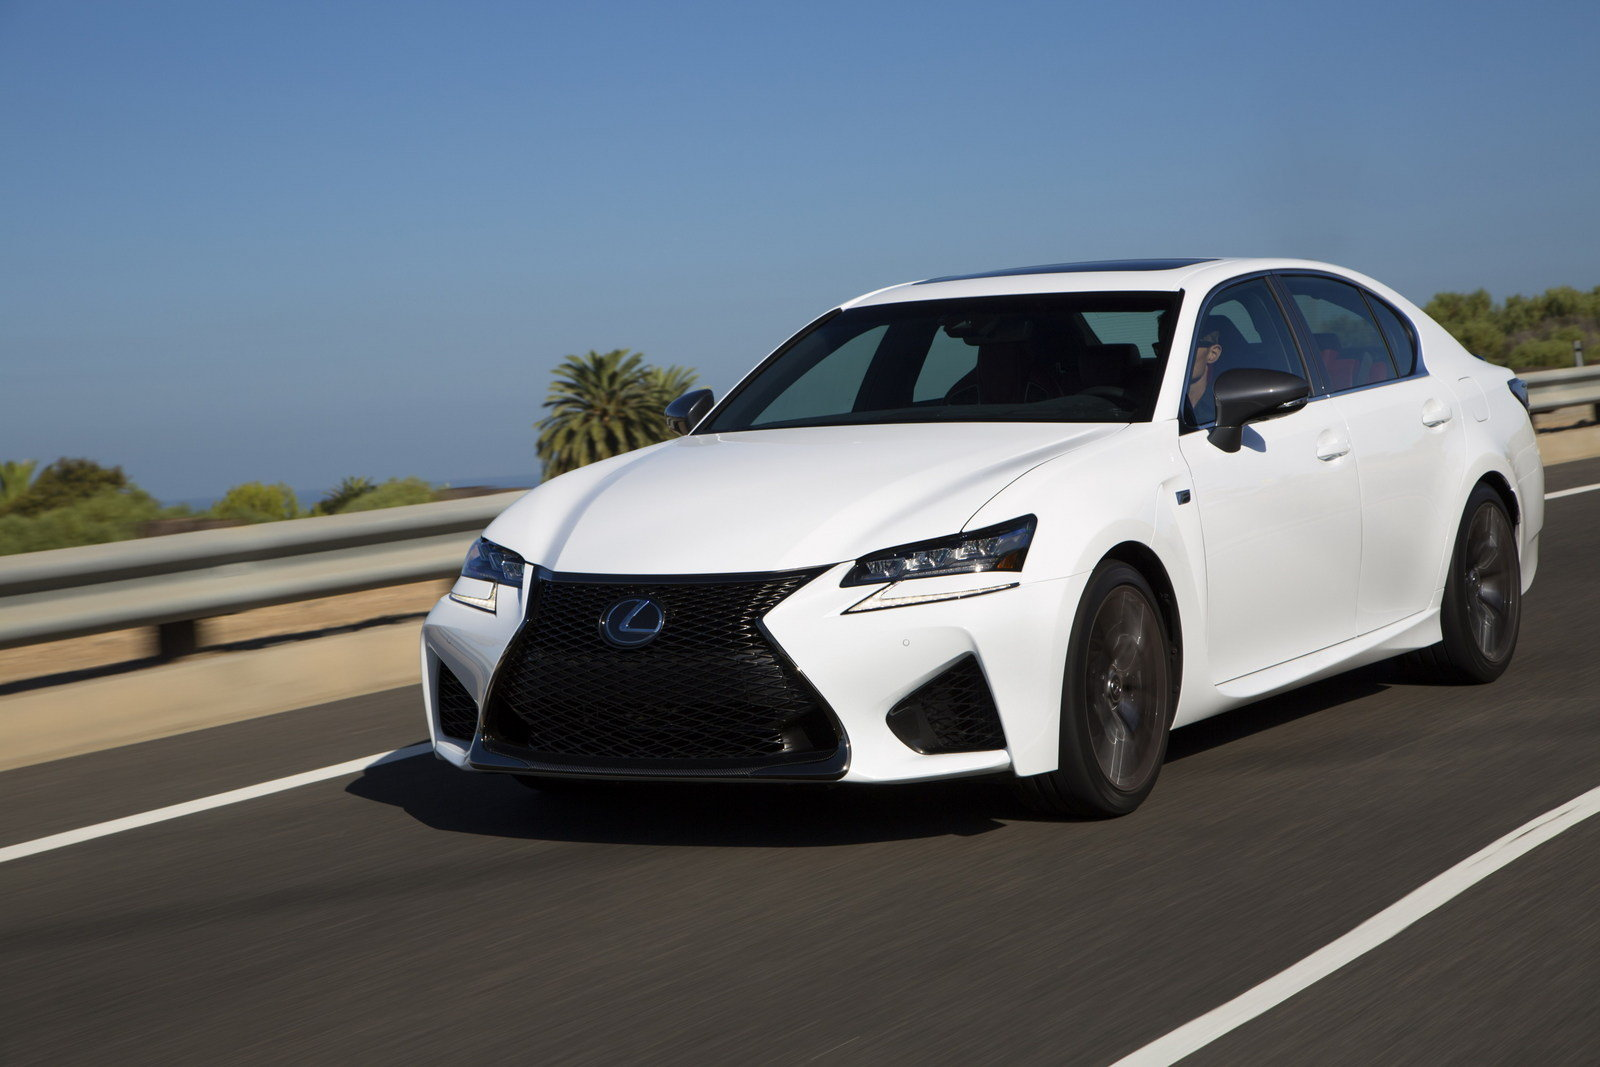 2016 lexus gs f picture 650612 car review top speed. Black Bedroom Furniture Sets. Home Design Ideas